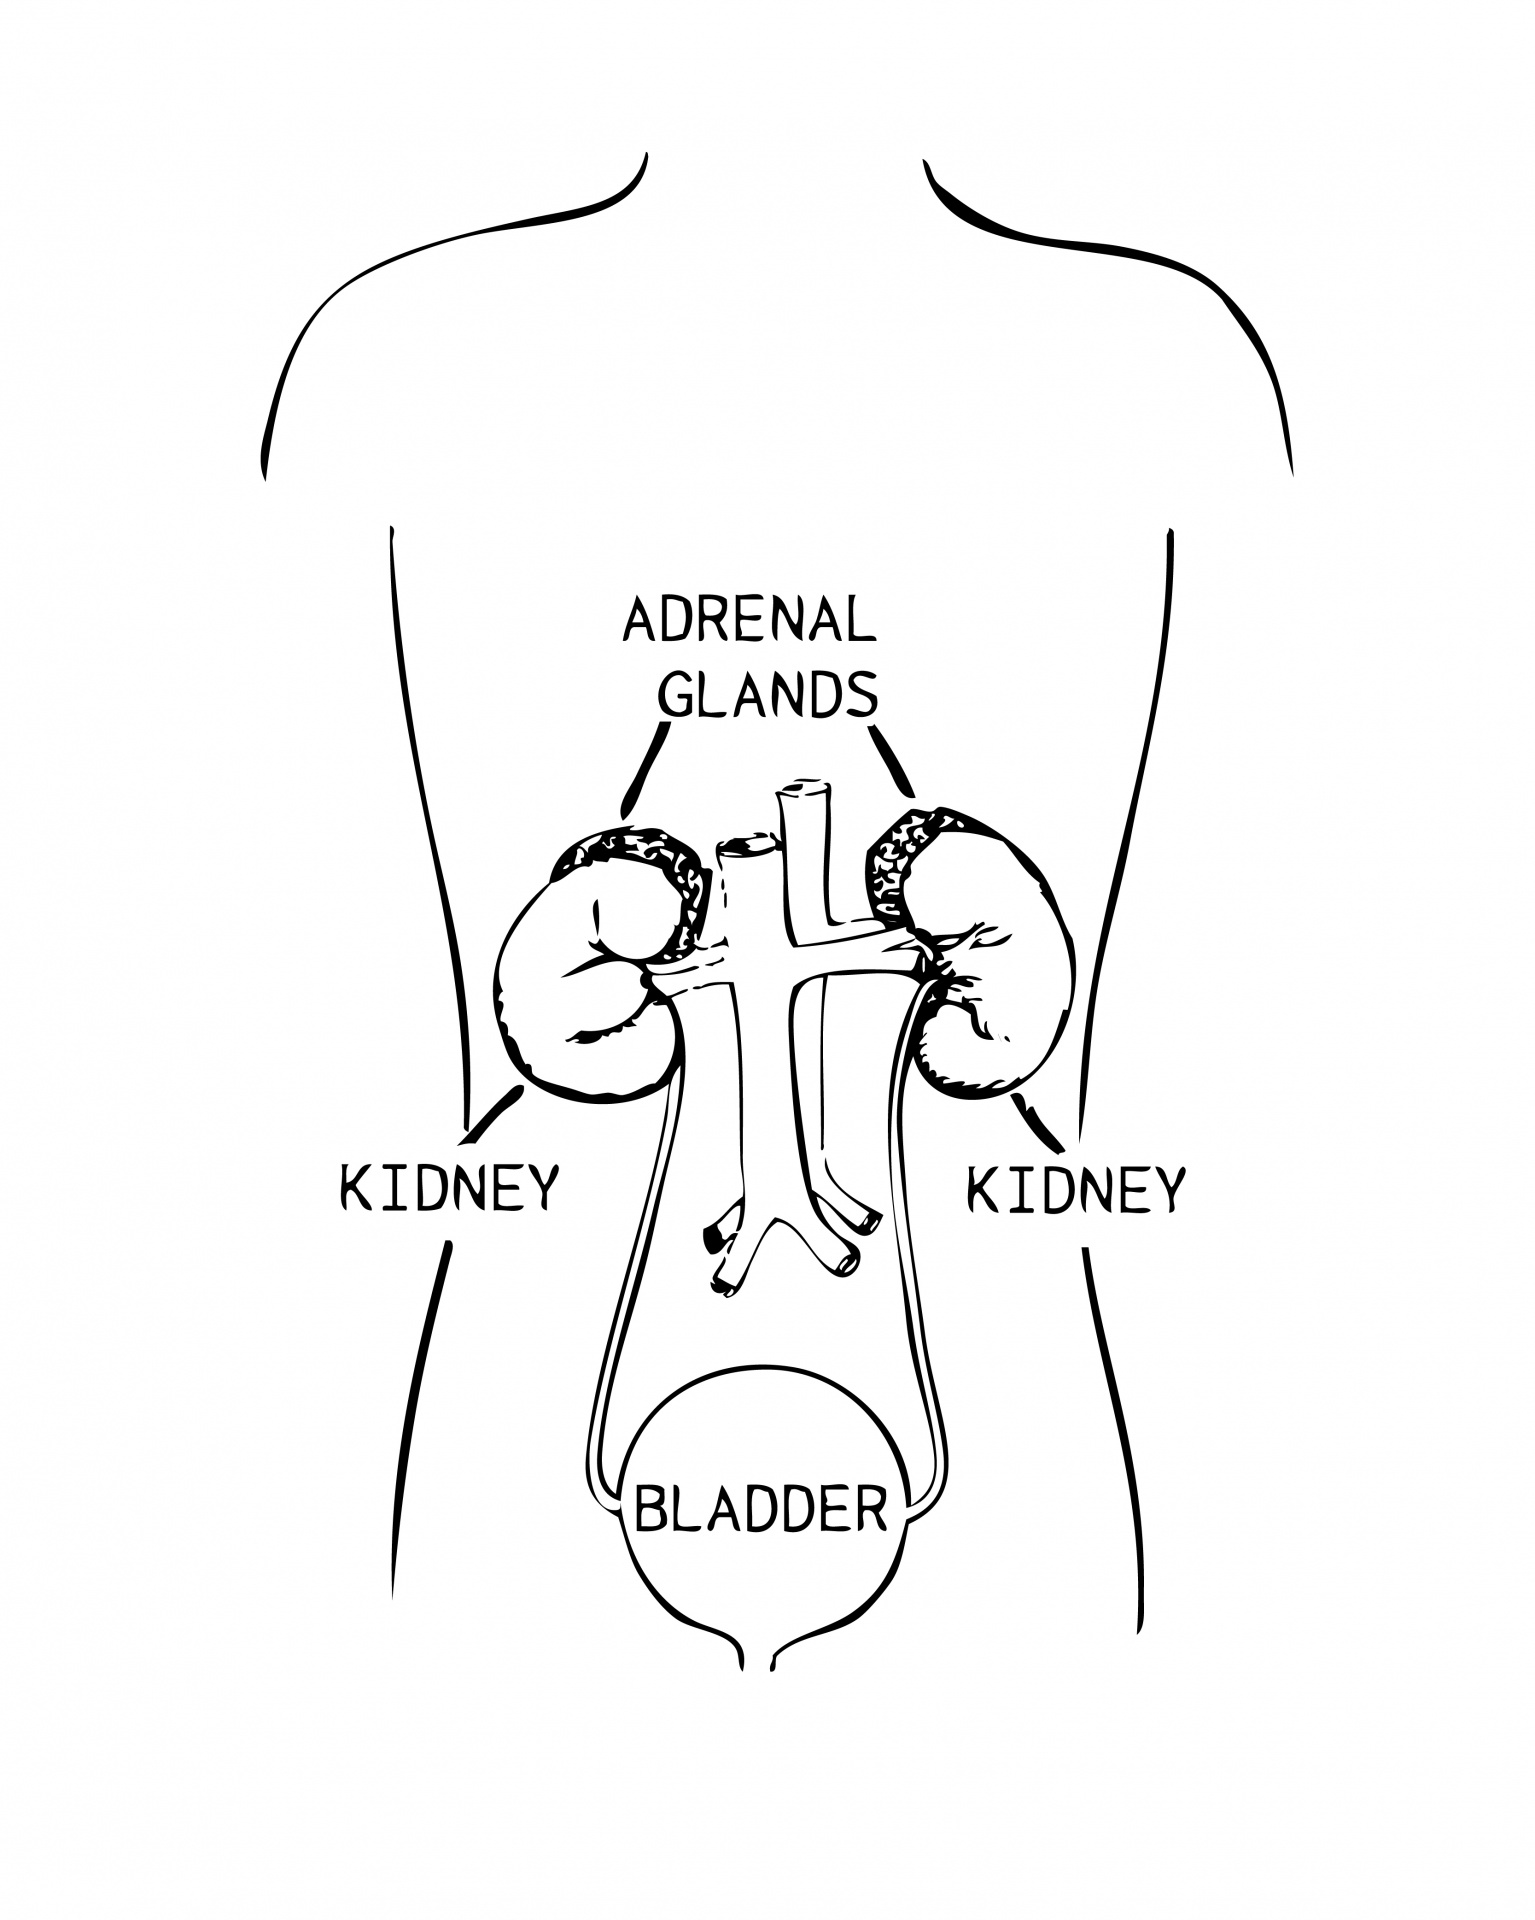 Adrenal Glands Diagram Illustration Free Stock Photo